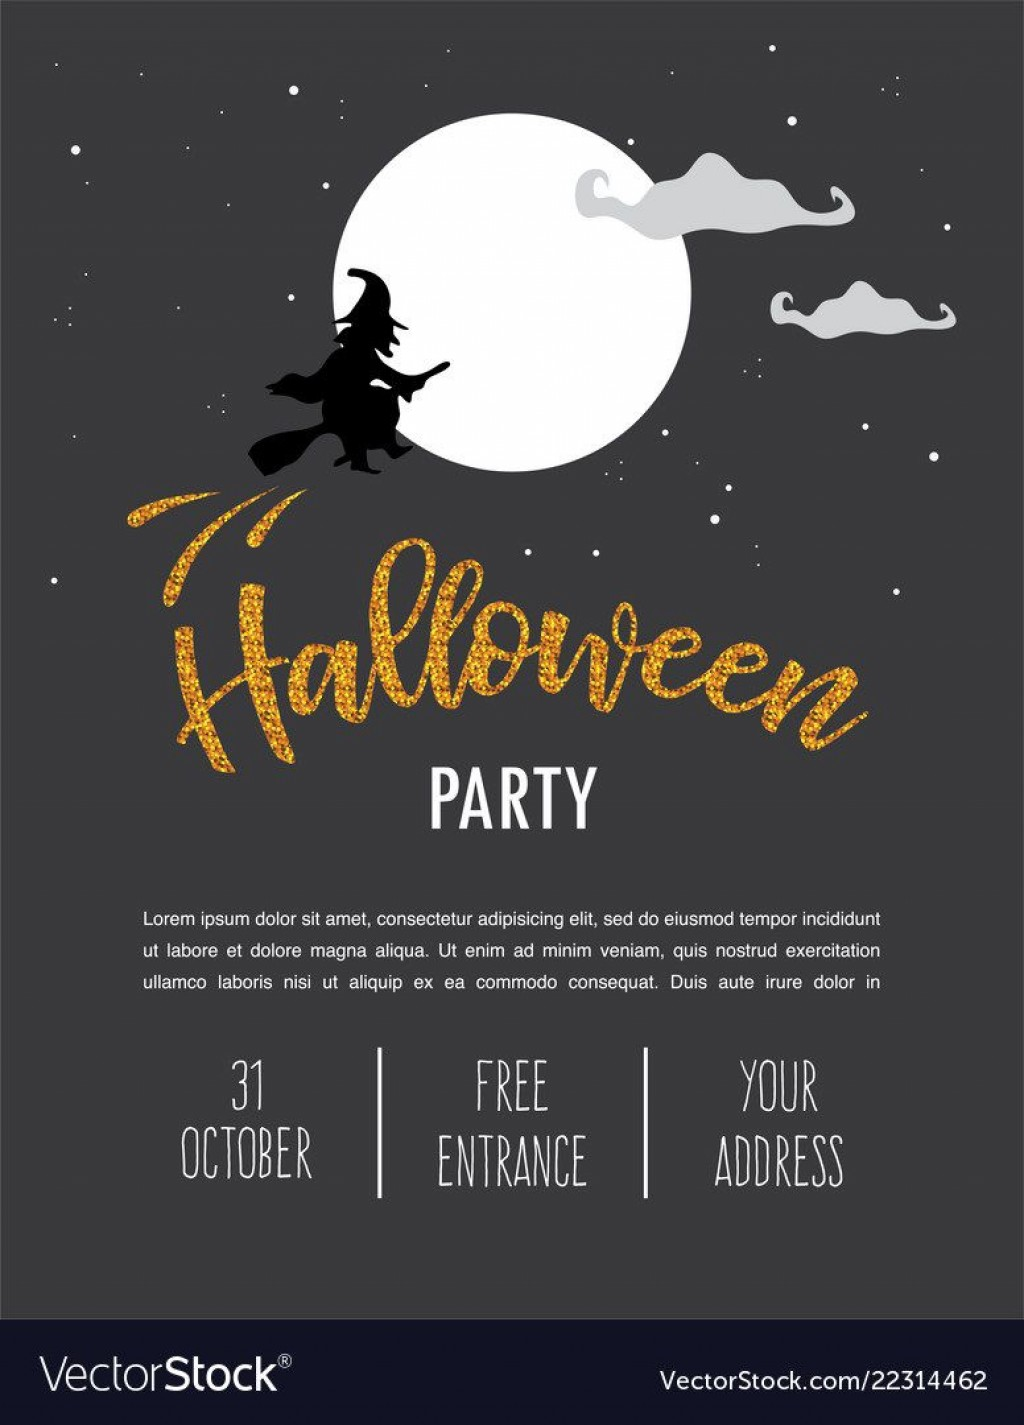 008 Awesome Halloween Party Invite Template High Definition  Spooky Invitation Free Printable Birthday DownloadLarge